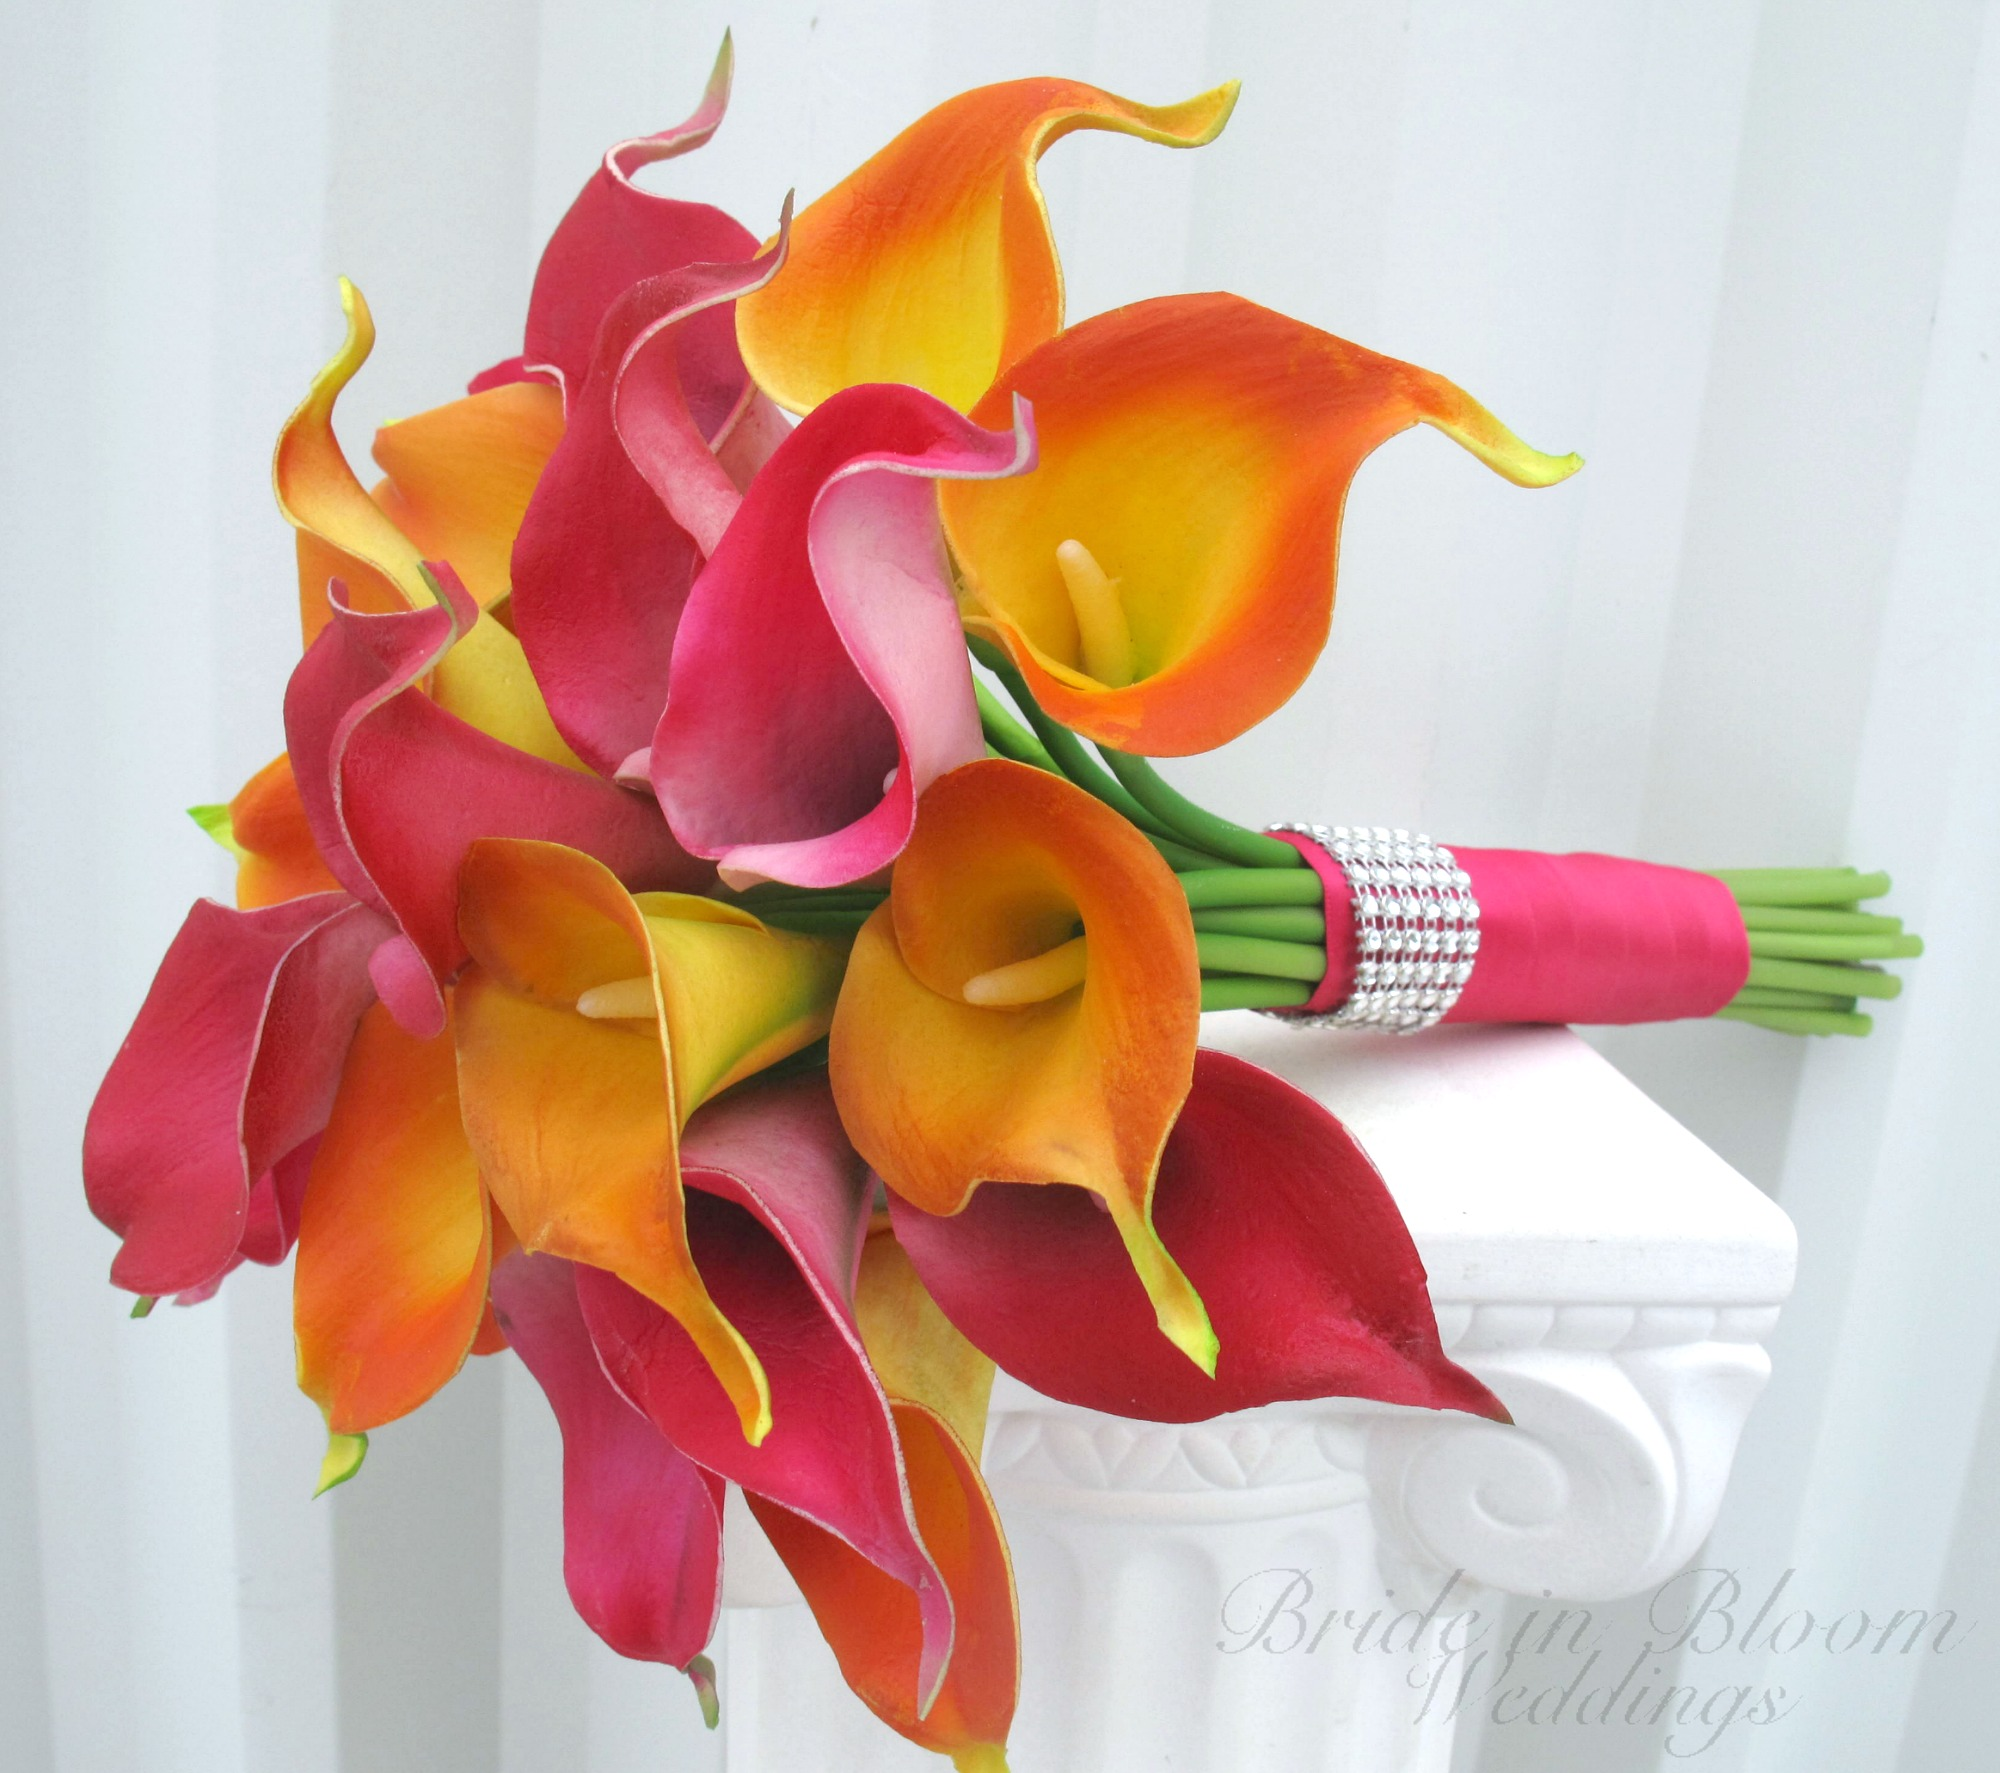 Average Cost Of Wedding Flowers In Los Angeles : Wedding bouquets made with calla lilies the best flowers